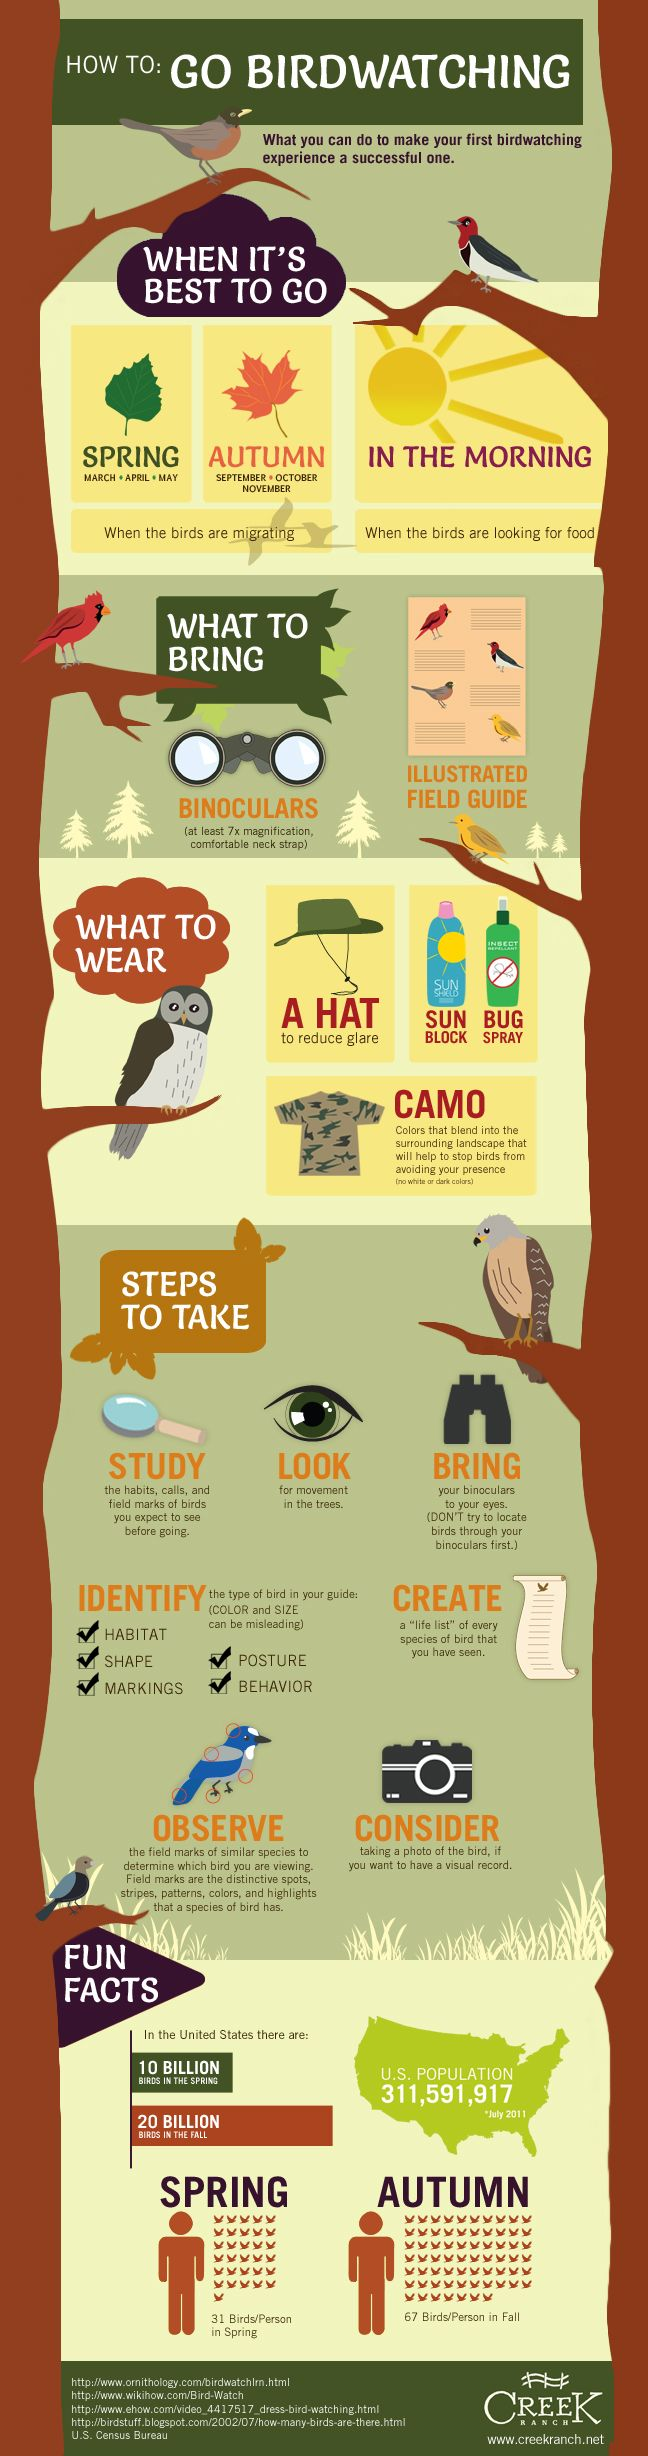 A complete graphic guide on how to go birdwatching. Most of it is basic advice, but is still helpful.